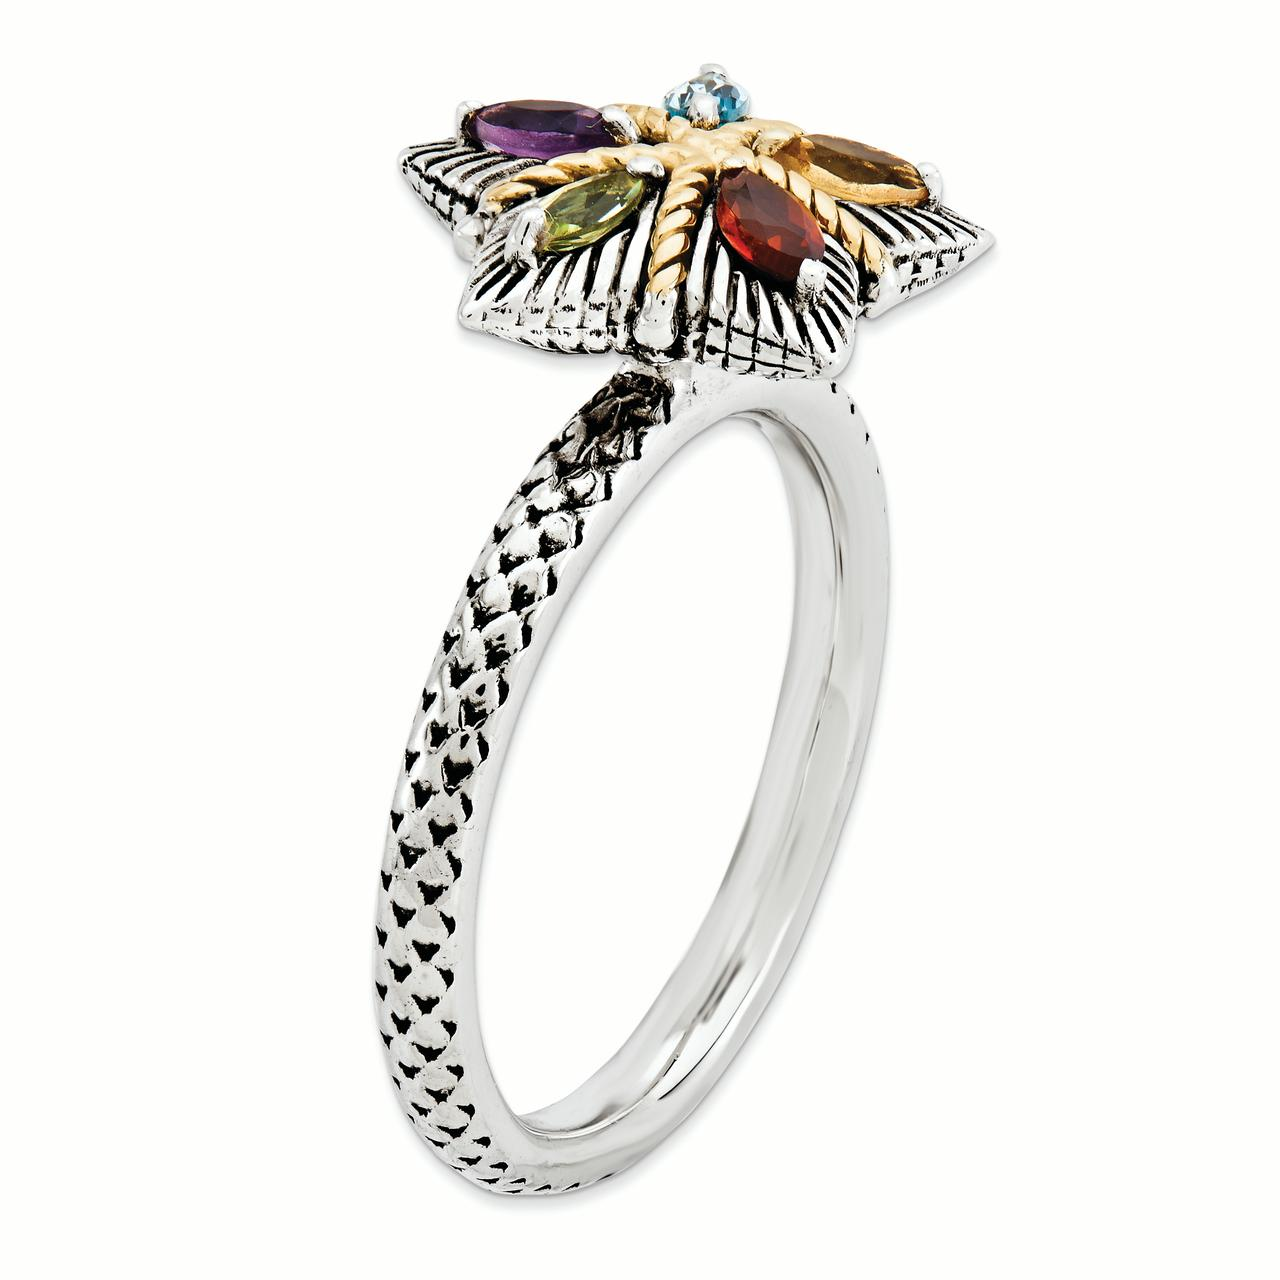 Sterling Silver & 14k Stackable Expressions Gemstone Antiqued Ring Size 6 - image 3 of 3